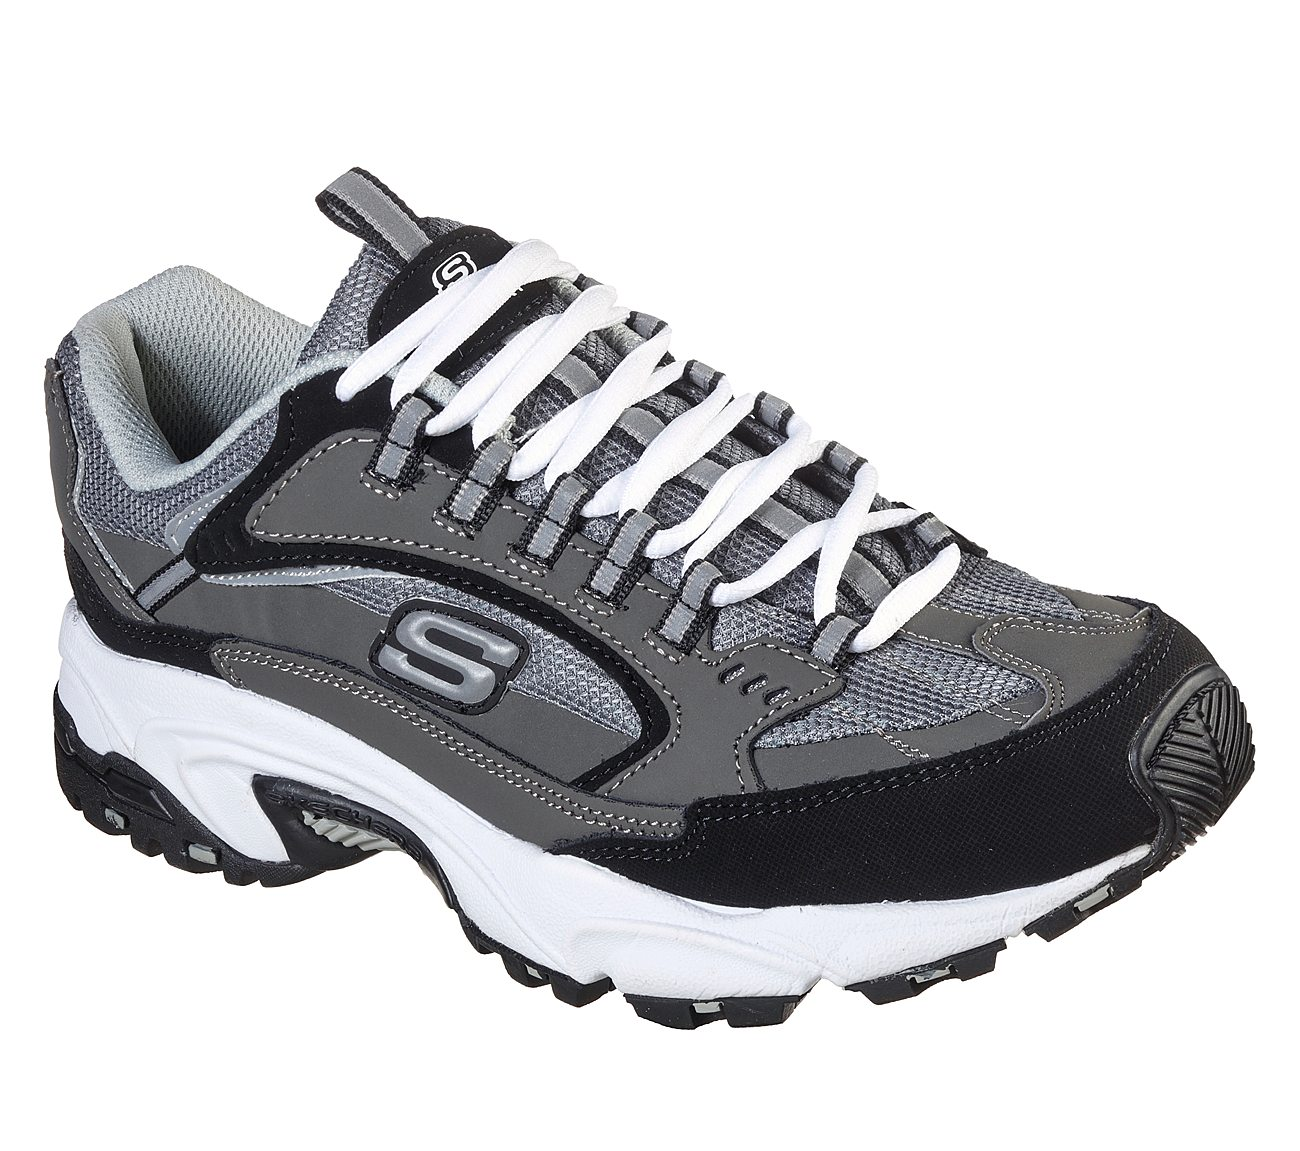 73a3ac130d37 Buy SKECHERS Stamina - Nuovo Sport Shoes only  60.00